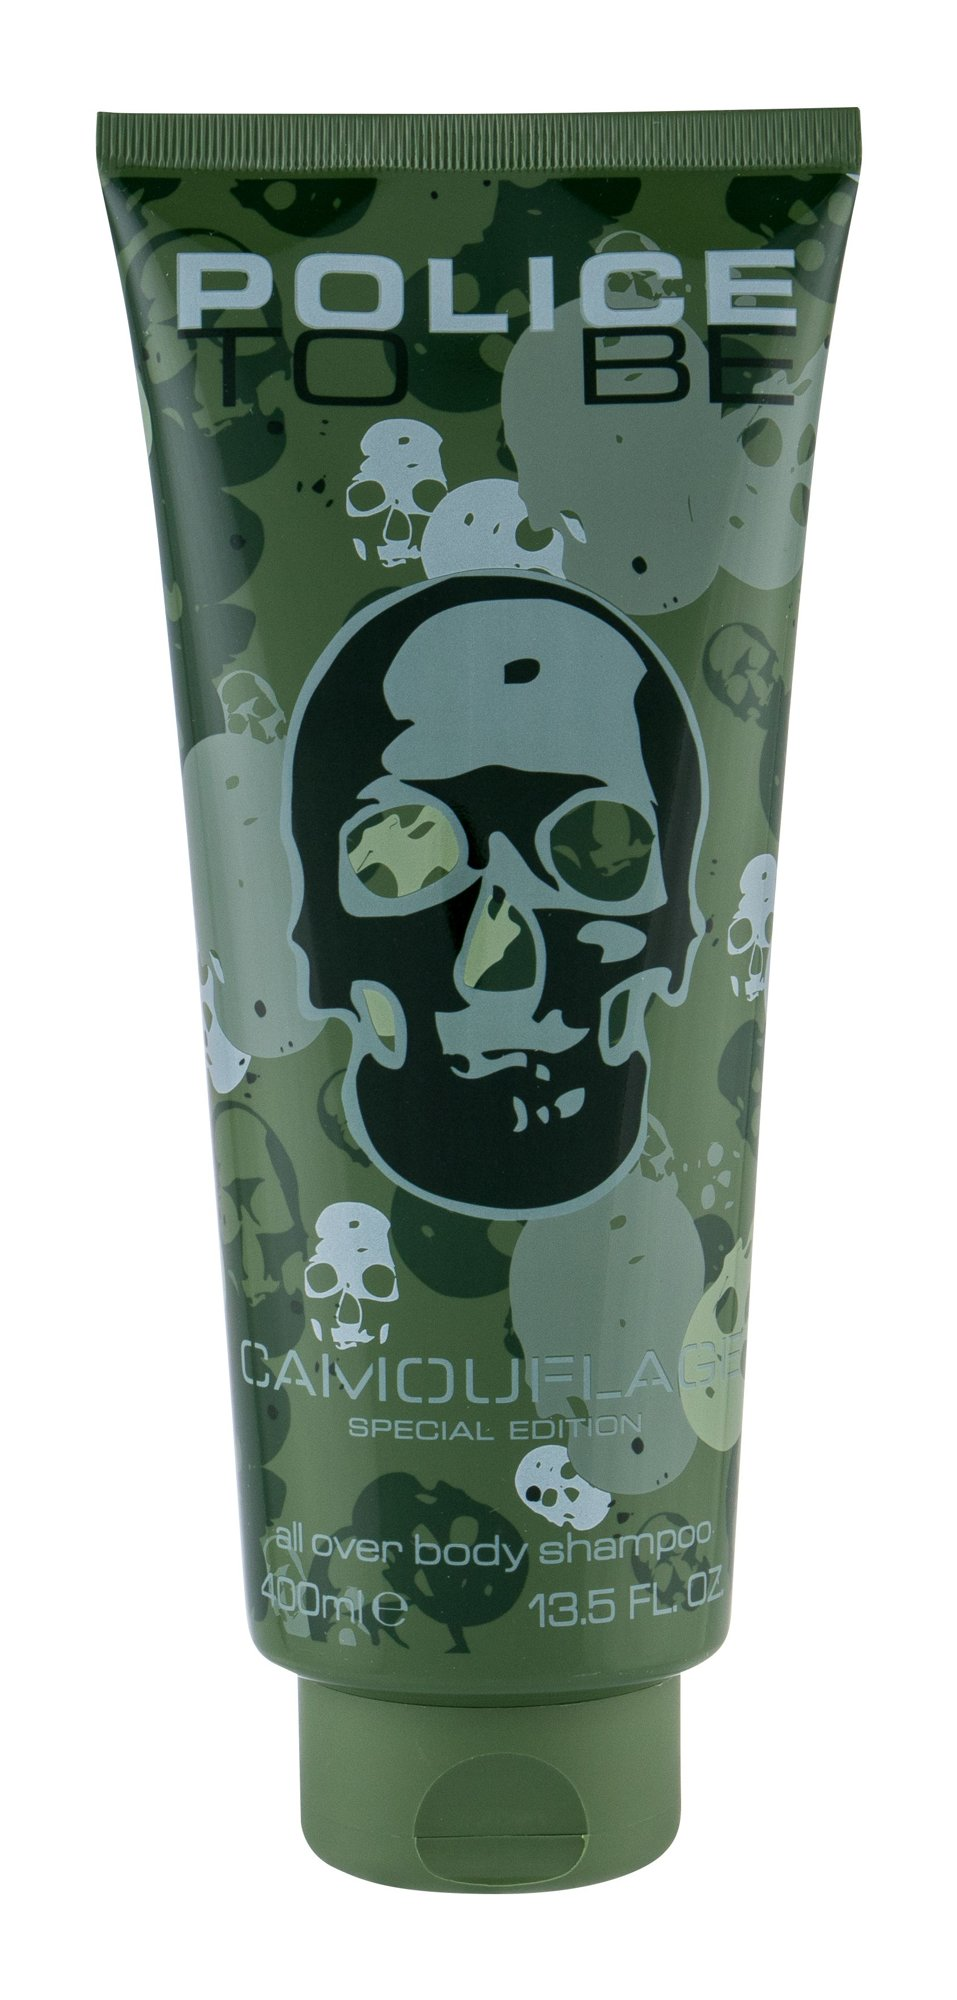 Police To Be Camouflage (Sprchový gel, M, 400 ml)